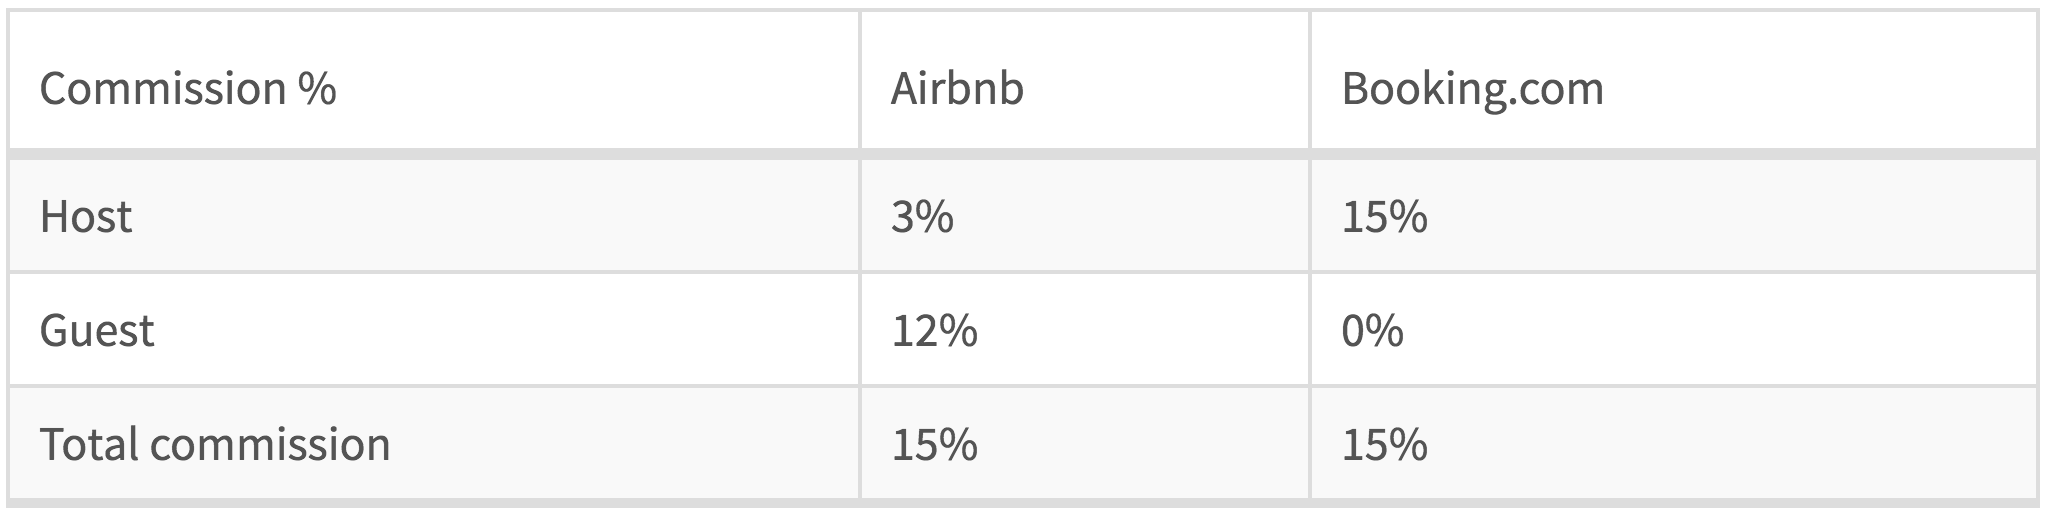 percentage-commission-difference-between-airbnb-and-booking.com